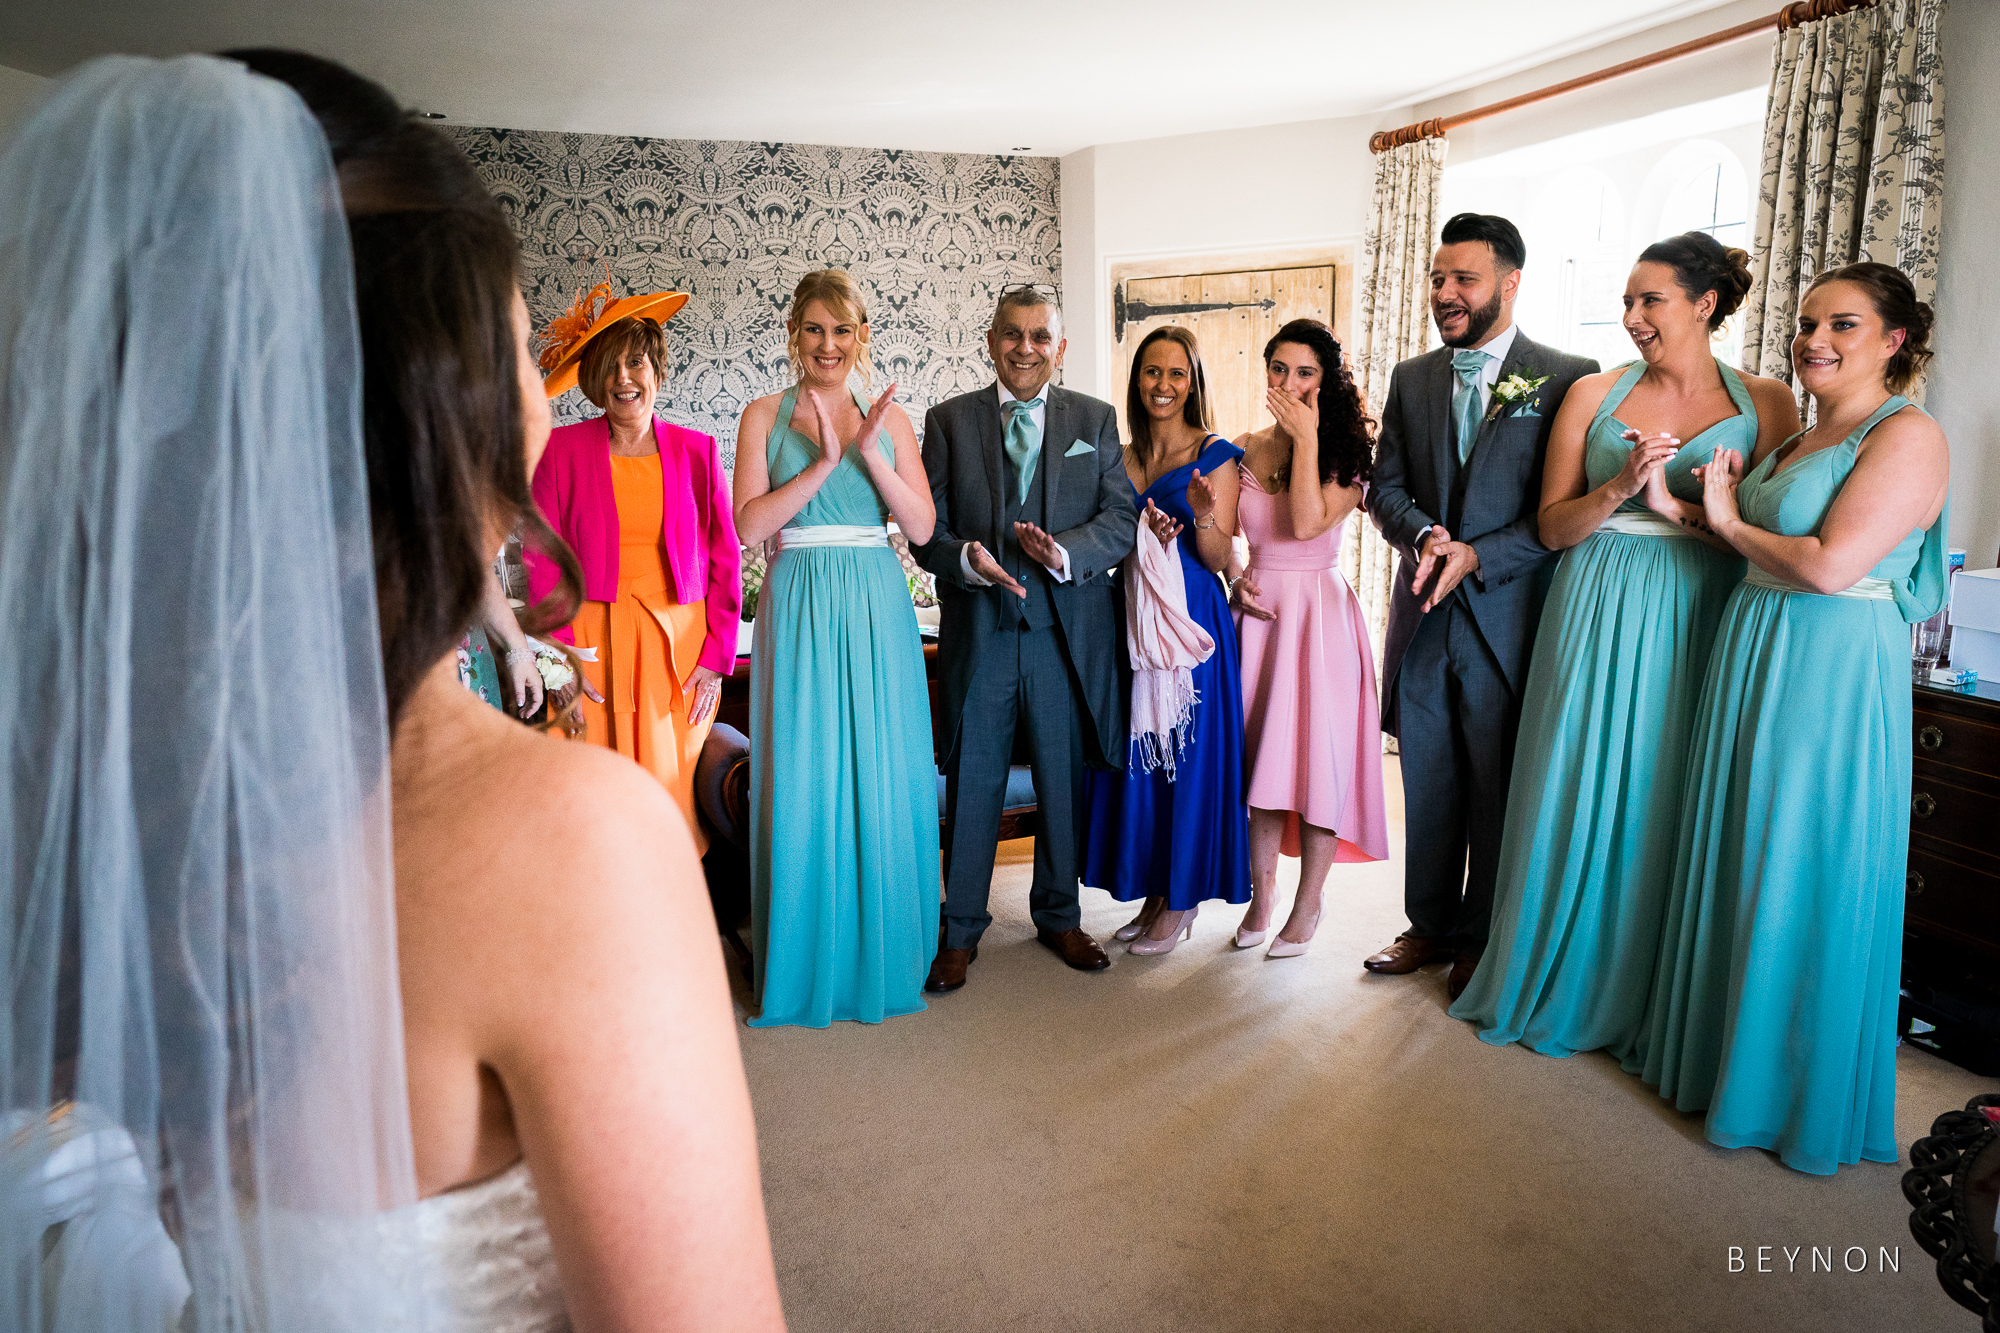 Bride shows off dress to bridal party